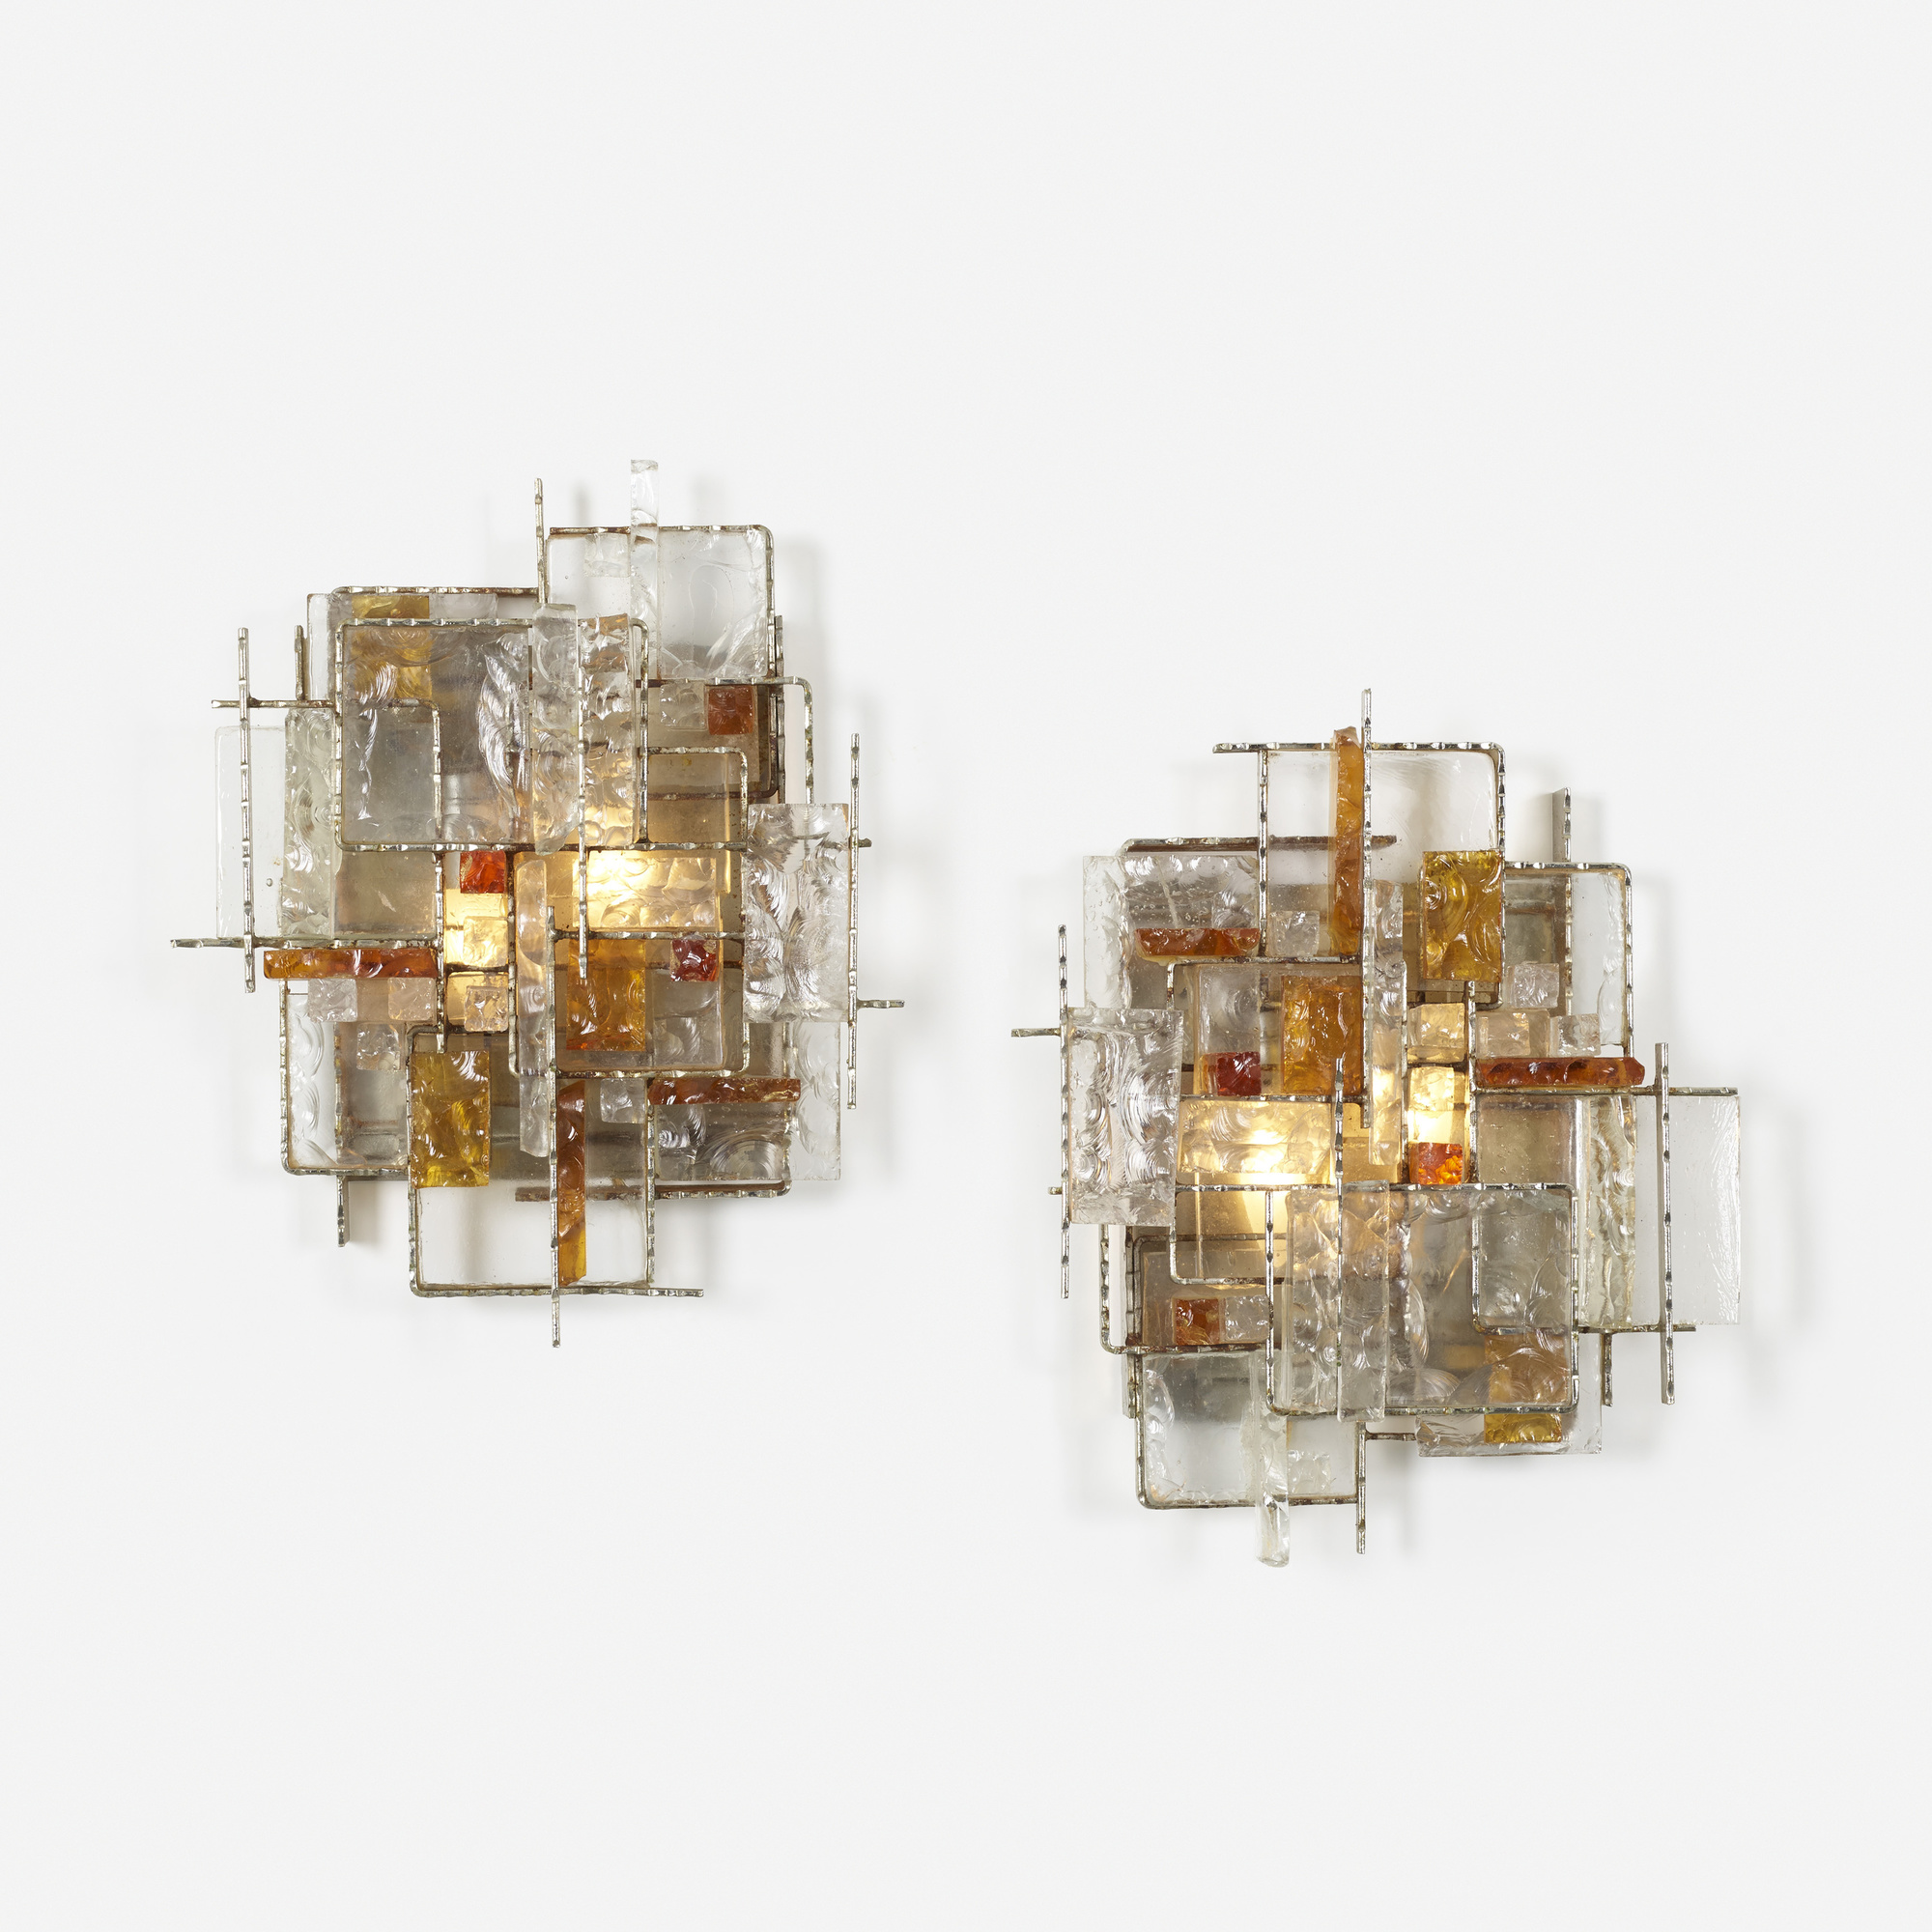 254: Poliarte / wall lights, pair (1 of 4)